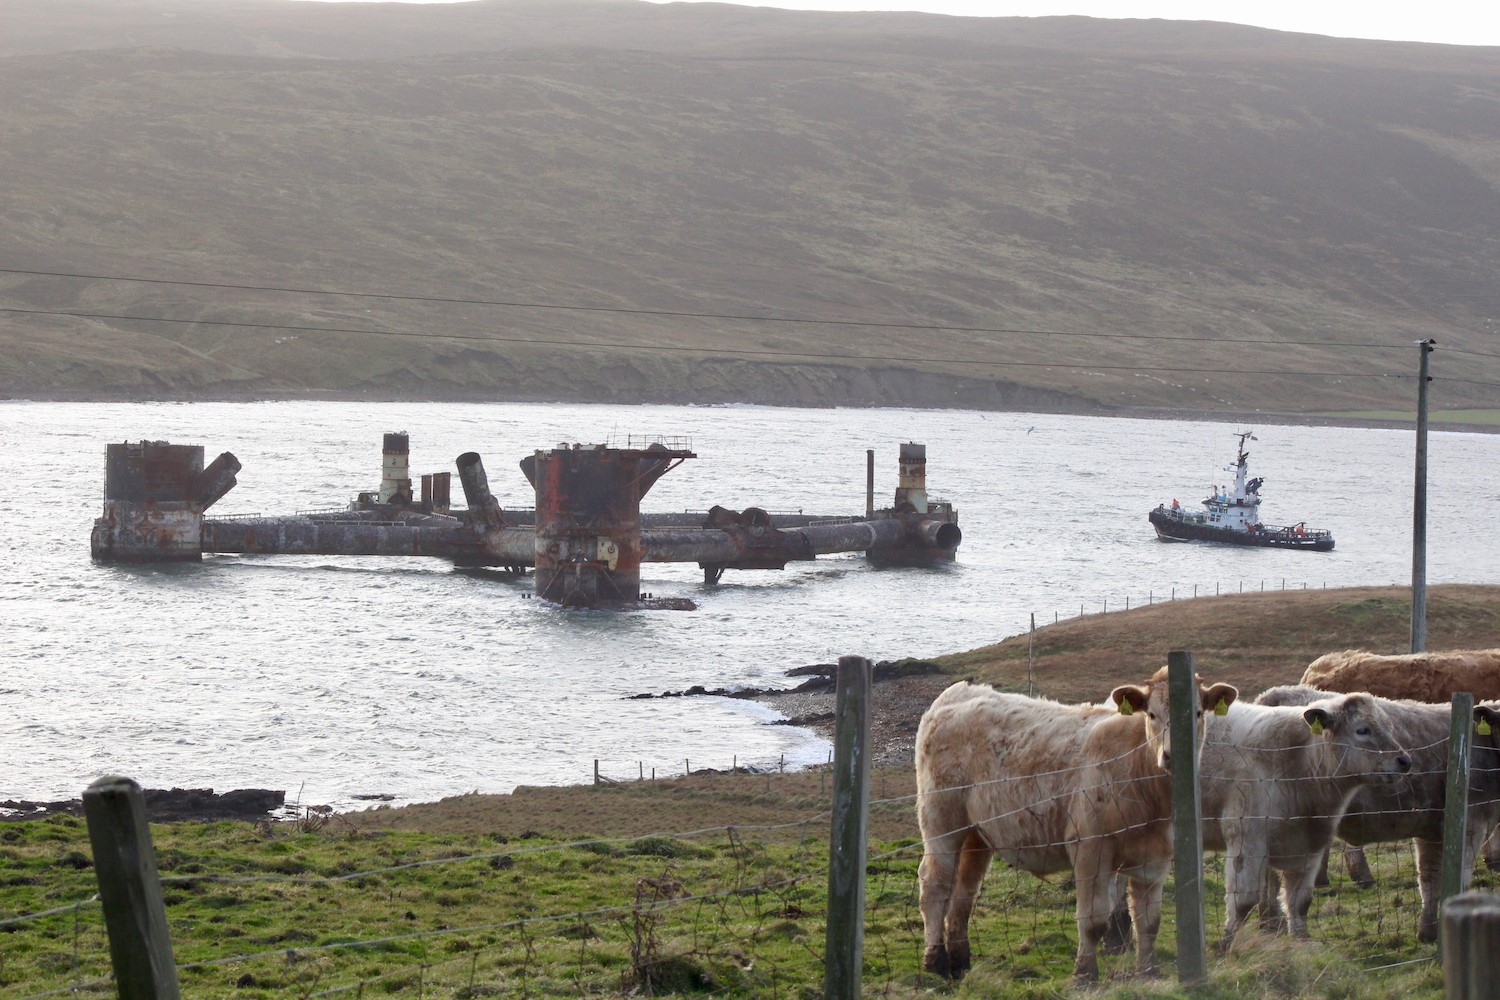 The Buchan Alpha oil platform which is being dismantled at Dales Voe in Lerwick broke free from the pier overnight in windy weather.